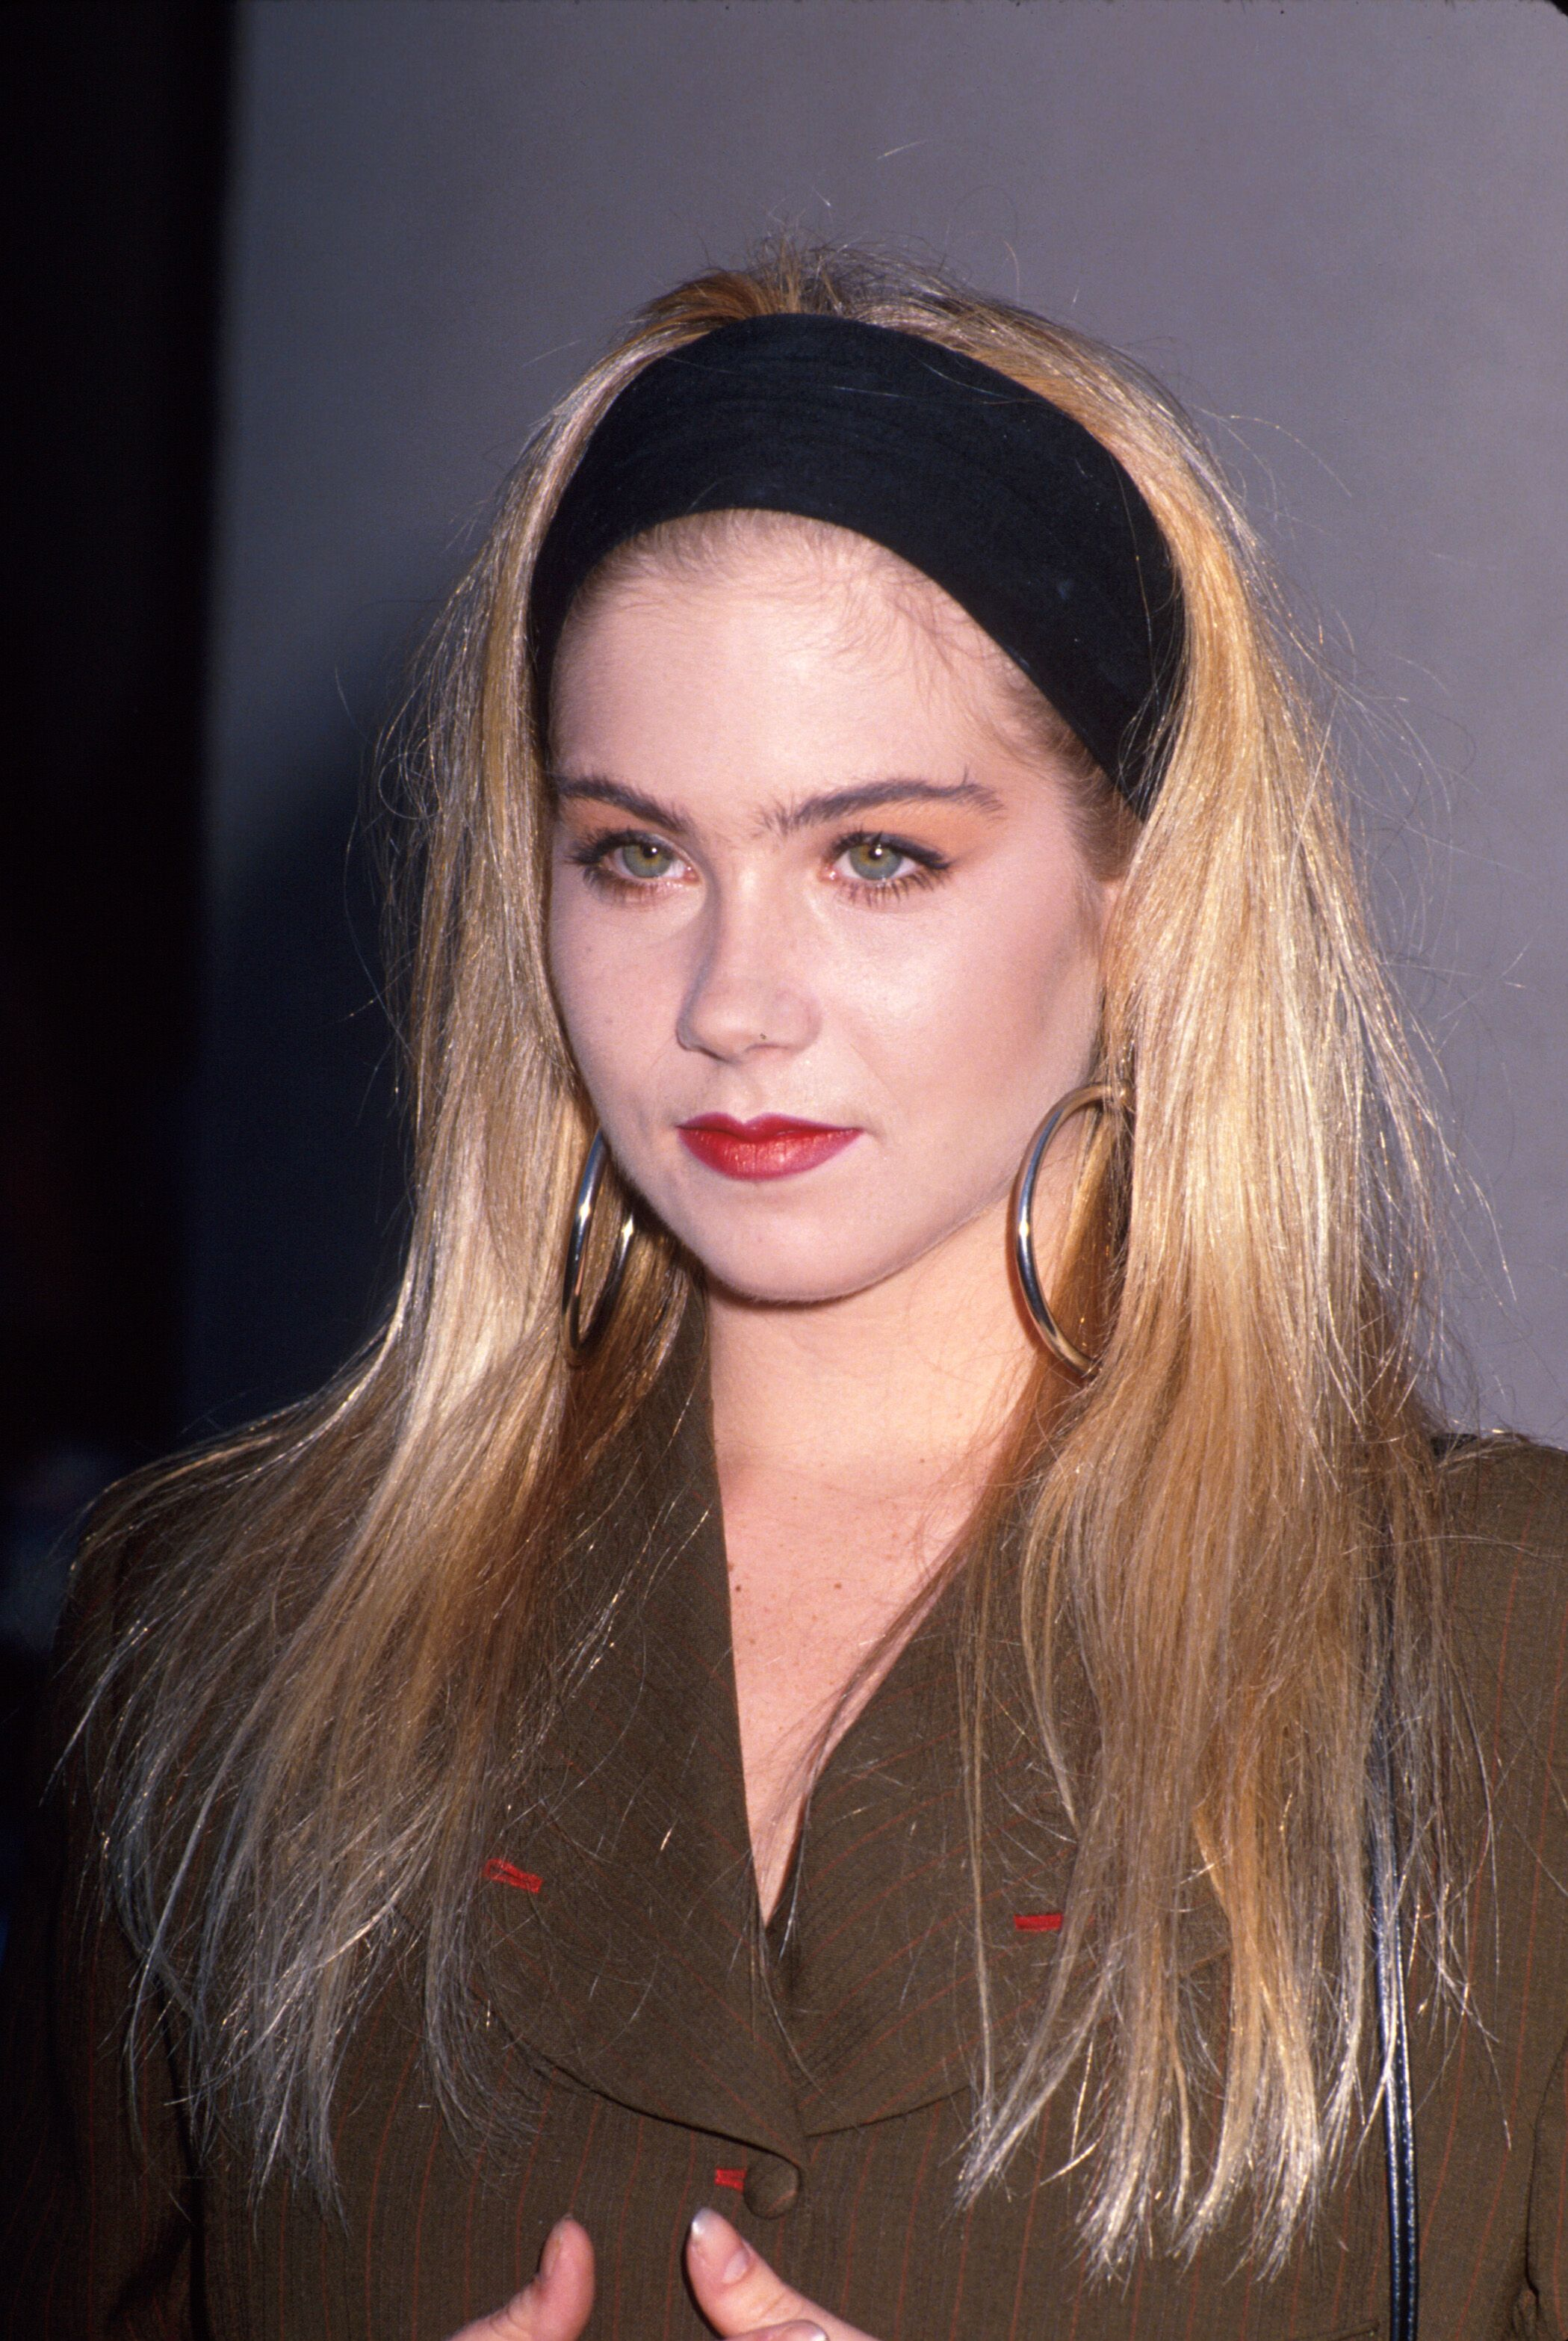 Actress Christina Applegate in the 90s | Source: Getty Images